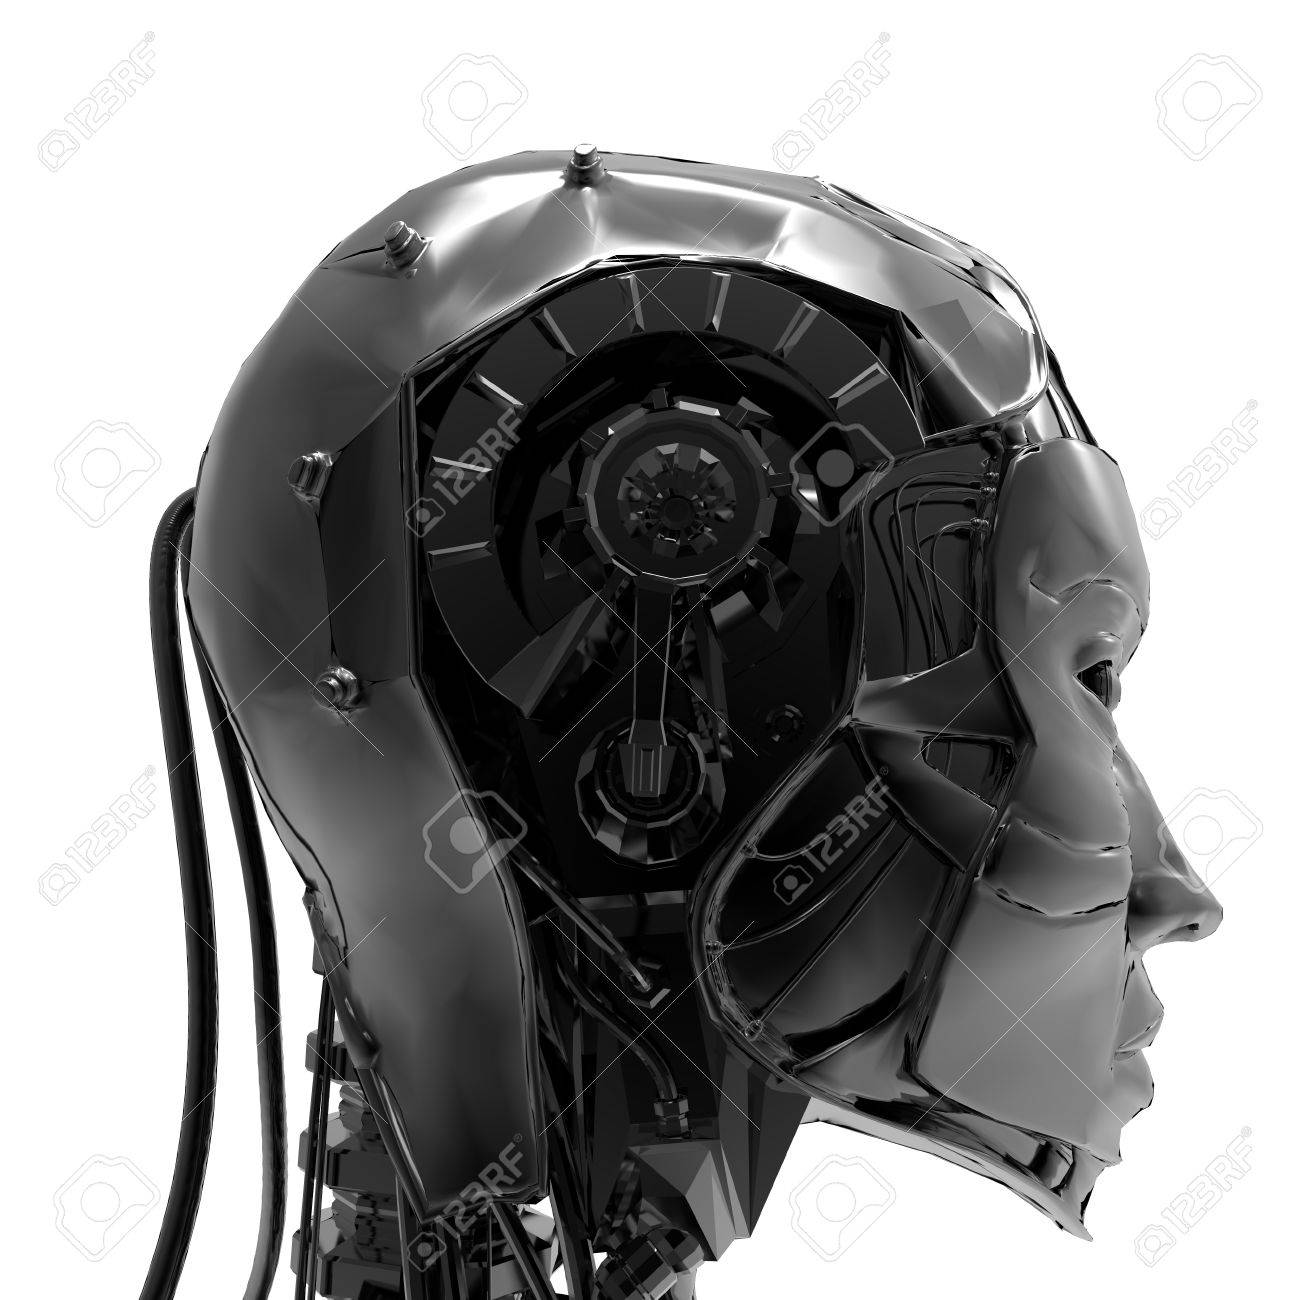 Technoorgirl  ,A mechanical ,cold and electronic version of women Stock Photo - 17401136